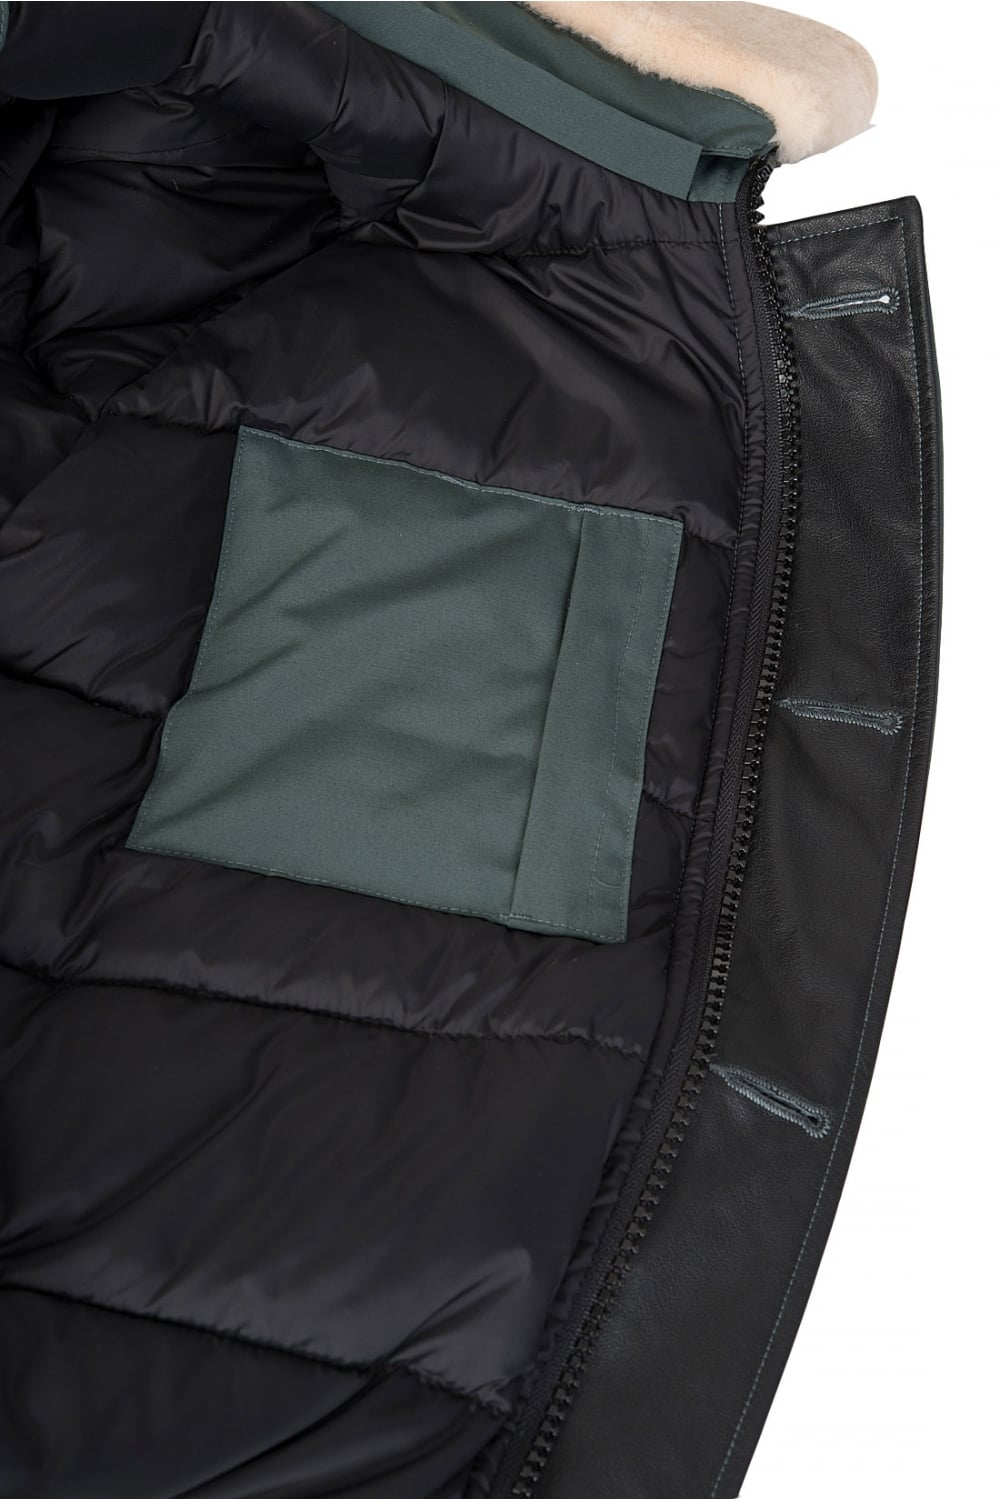 Canada Goose chateau parka outlet cheap - CANADA GOOSE Canada Goose Mens Foxe Bomber Green - CANADA GOOSE ...